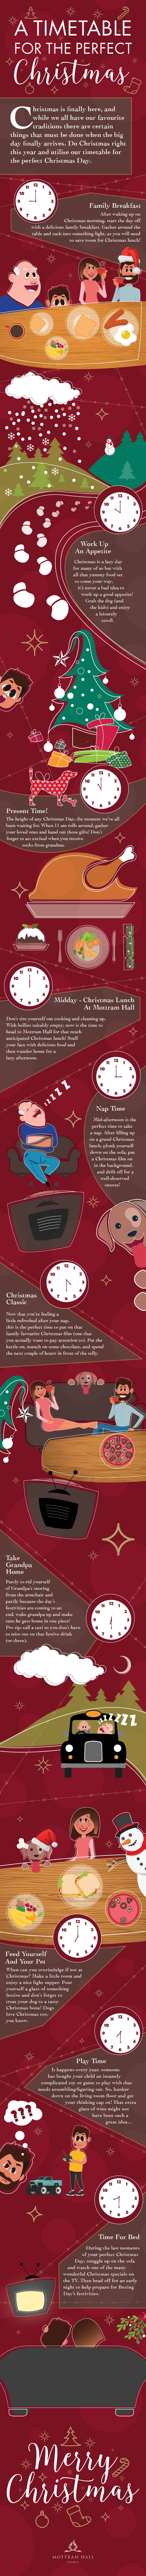 Timetable for Perfect Christmas Infographic